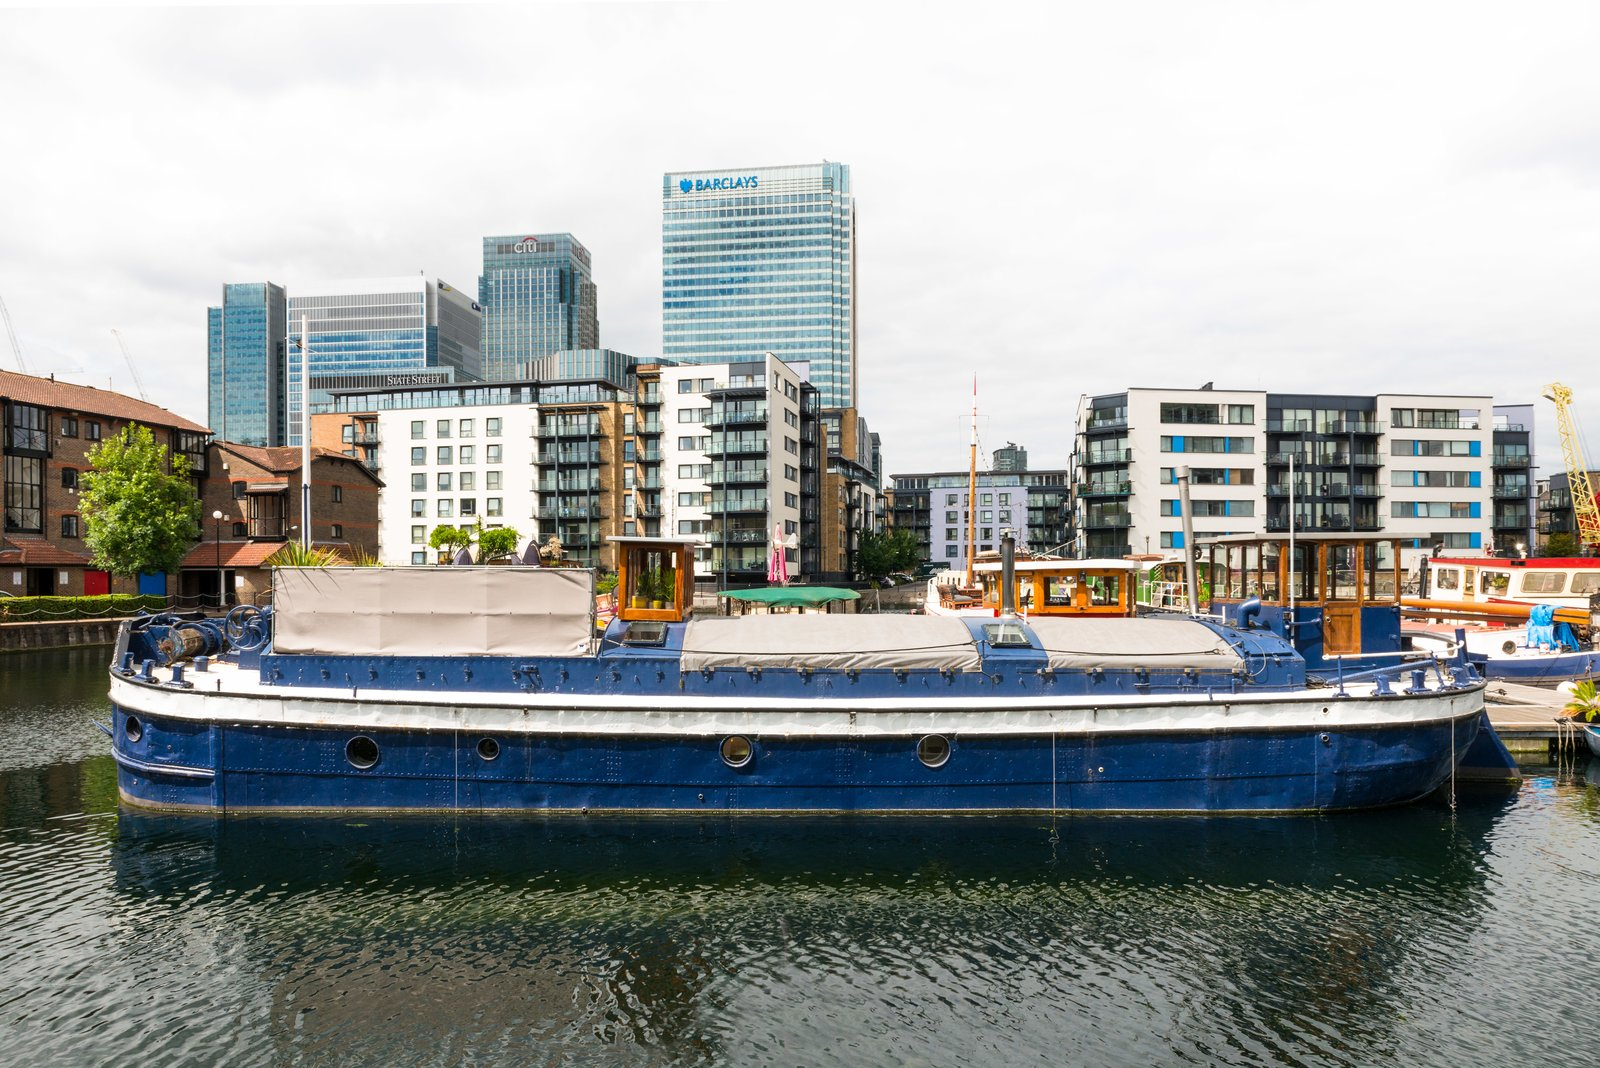 Photo 1 of 9 in Londoners Can Live in This Scandinavian-Inspired, Converted Barge For $424K